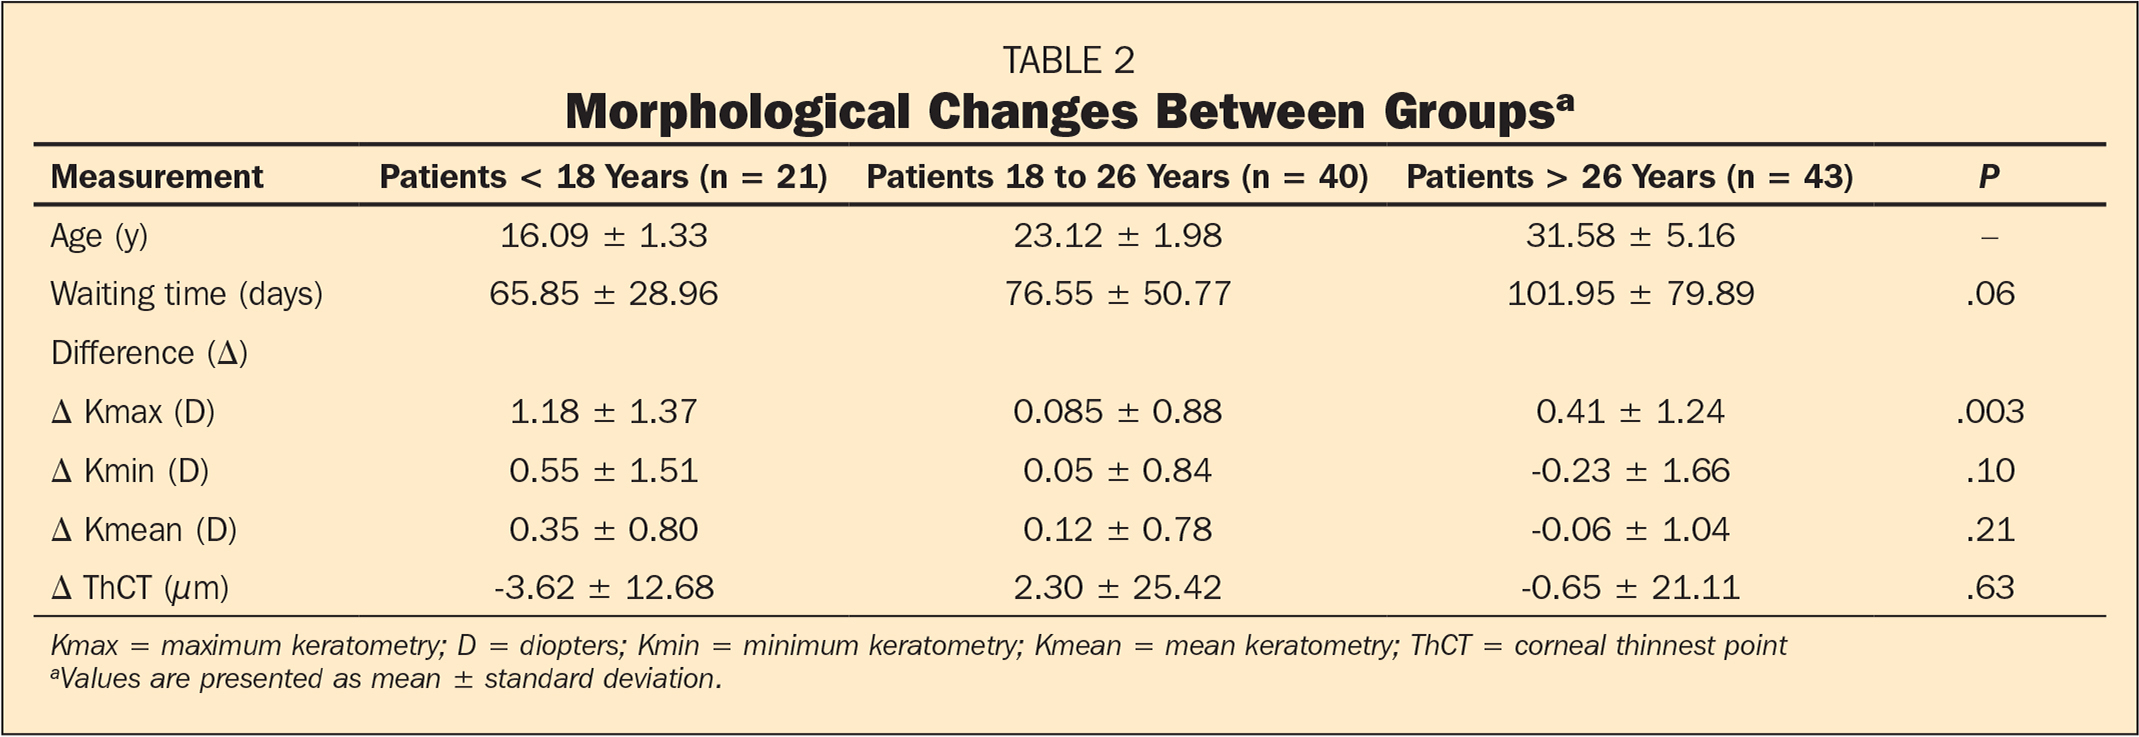 Morphological Changes Between Groupsa